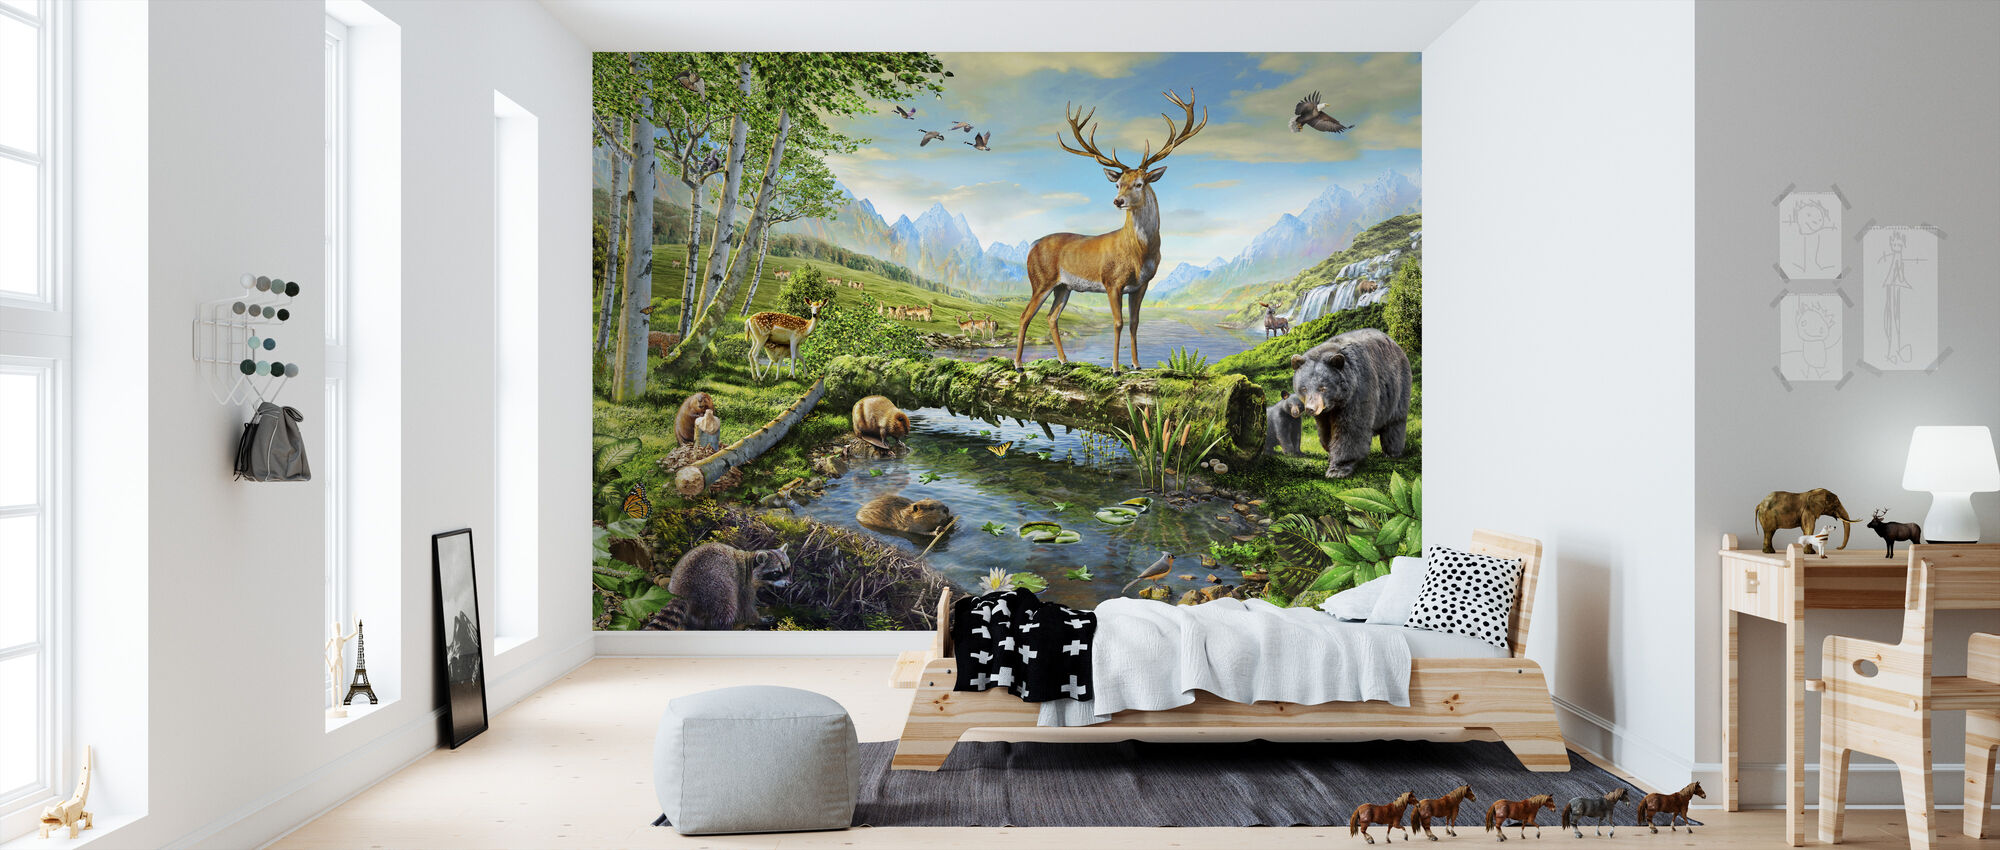 Wildlife Splendor US - Wallpaper - Kids Room